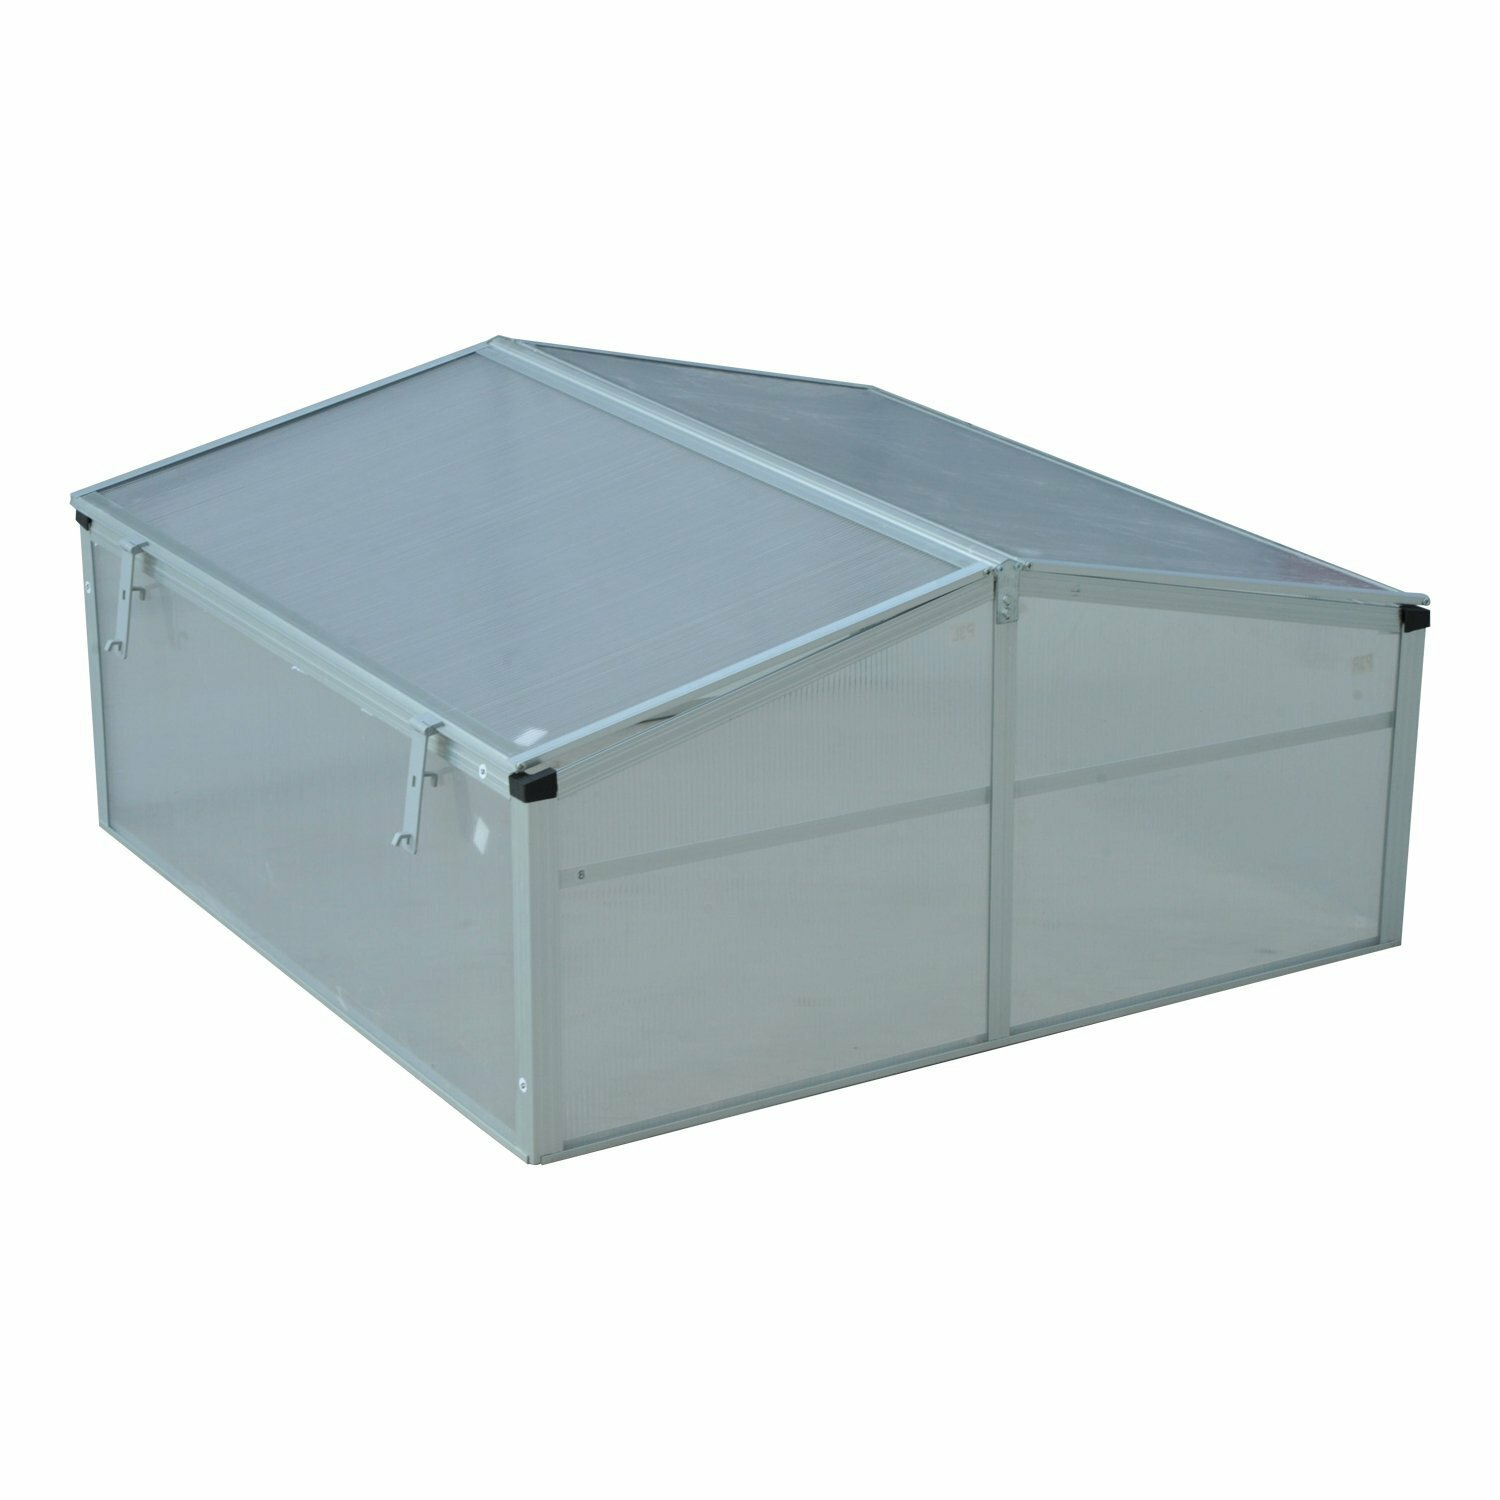 Greenhouse 4 ft Extendable Steel Frame with Zippered Windows x 4 ft x 36 in